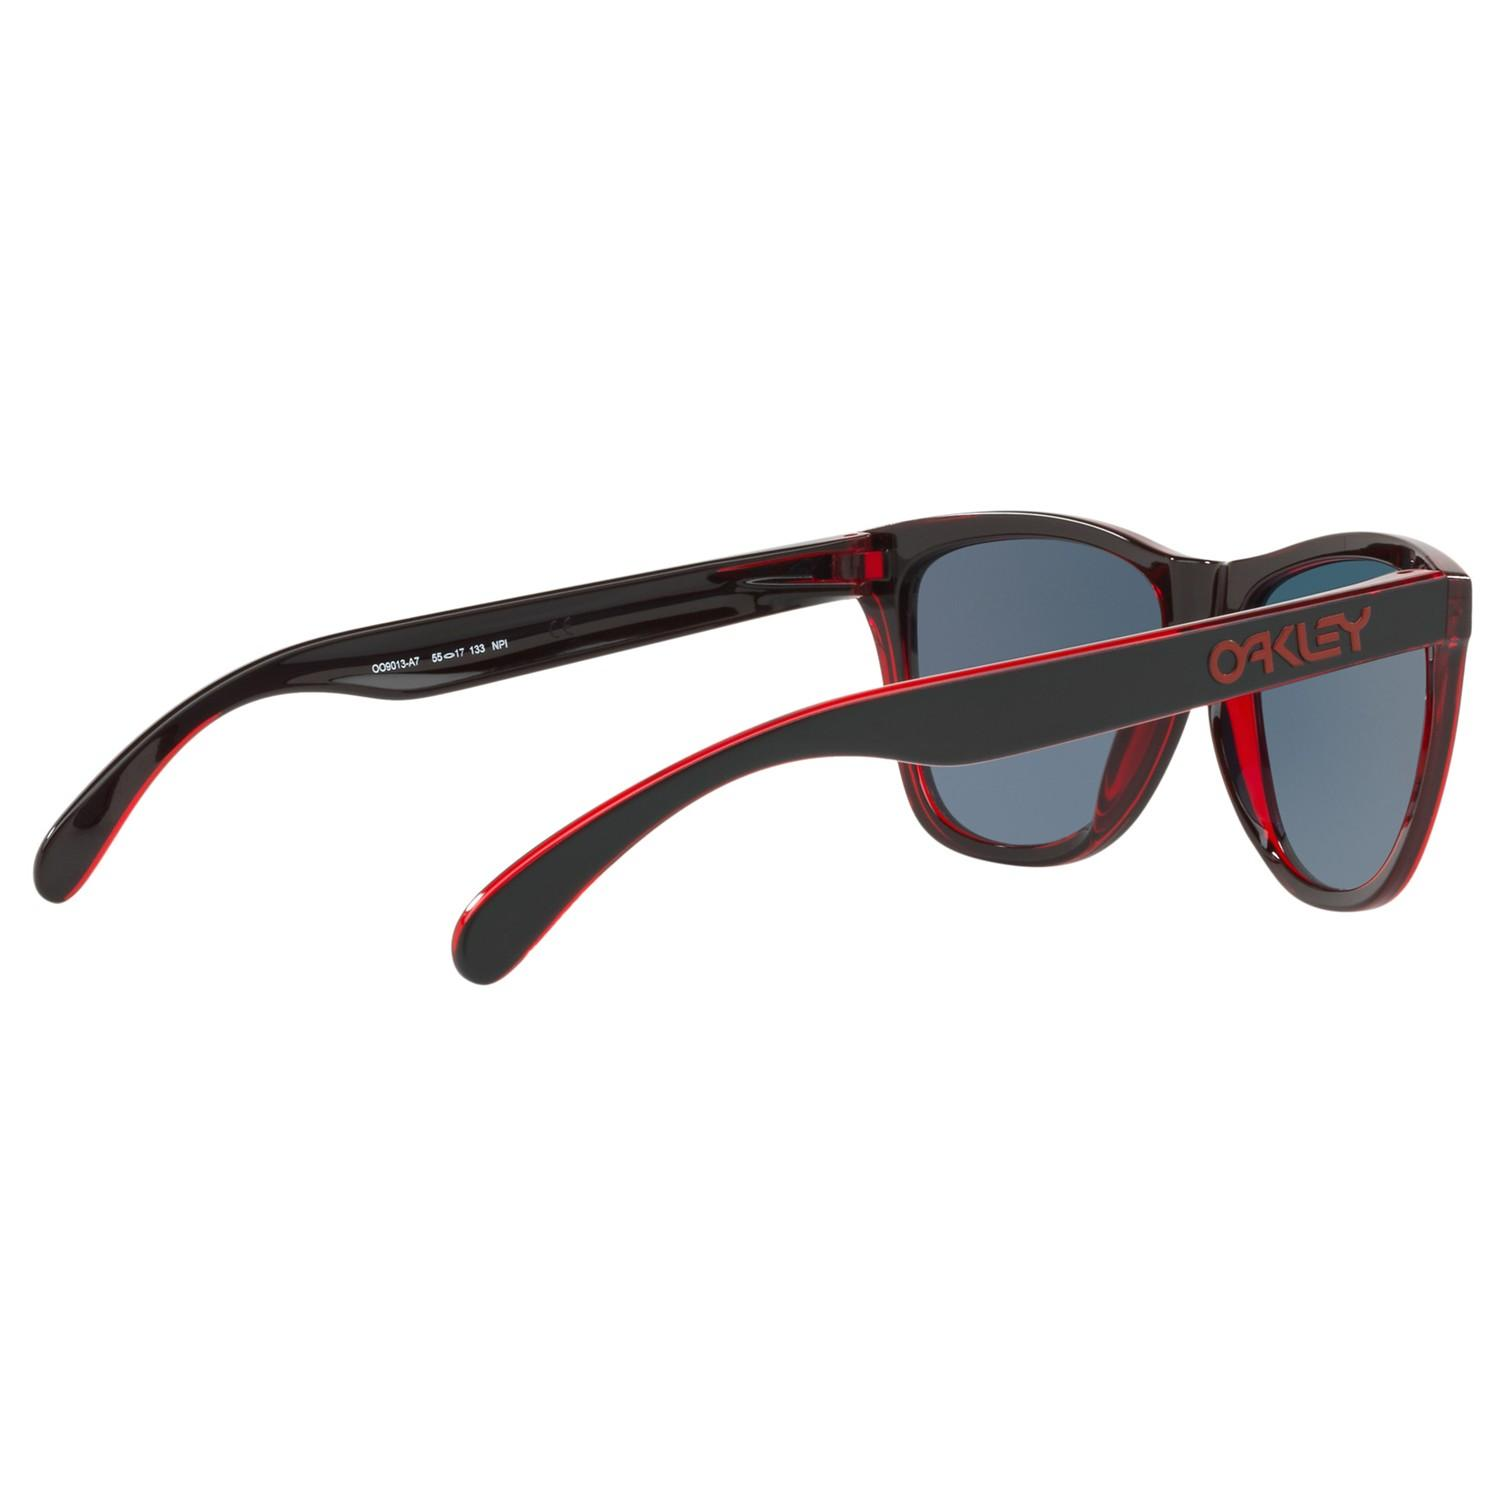 Oakley Oo9013 Frogskins Square Sunglasses in Black